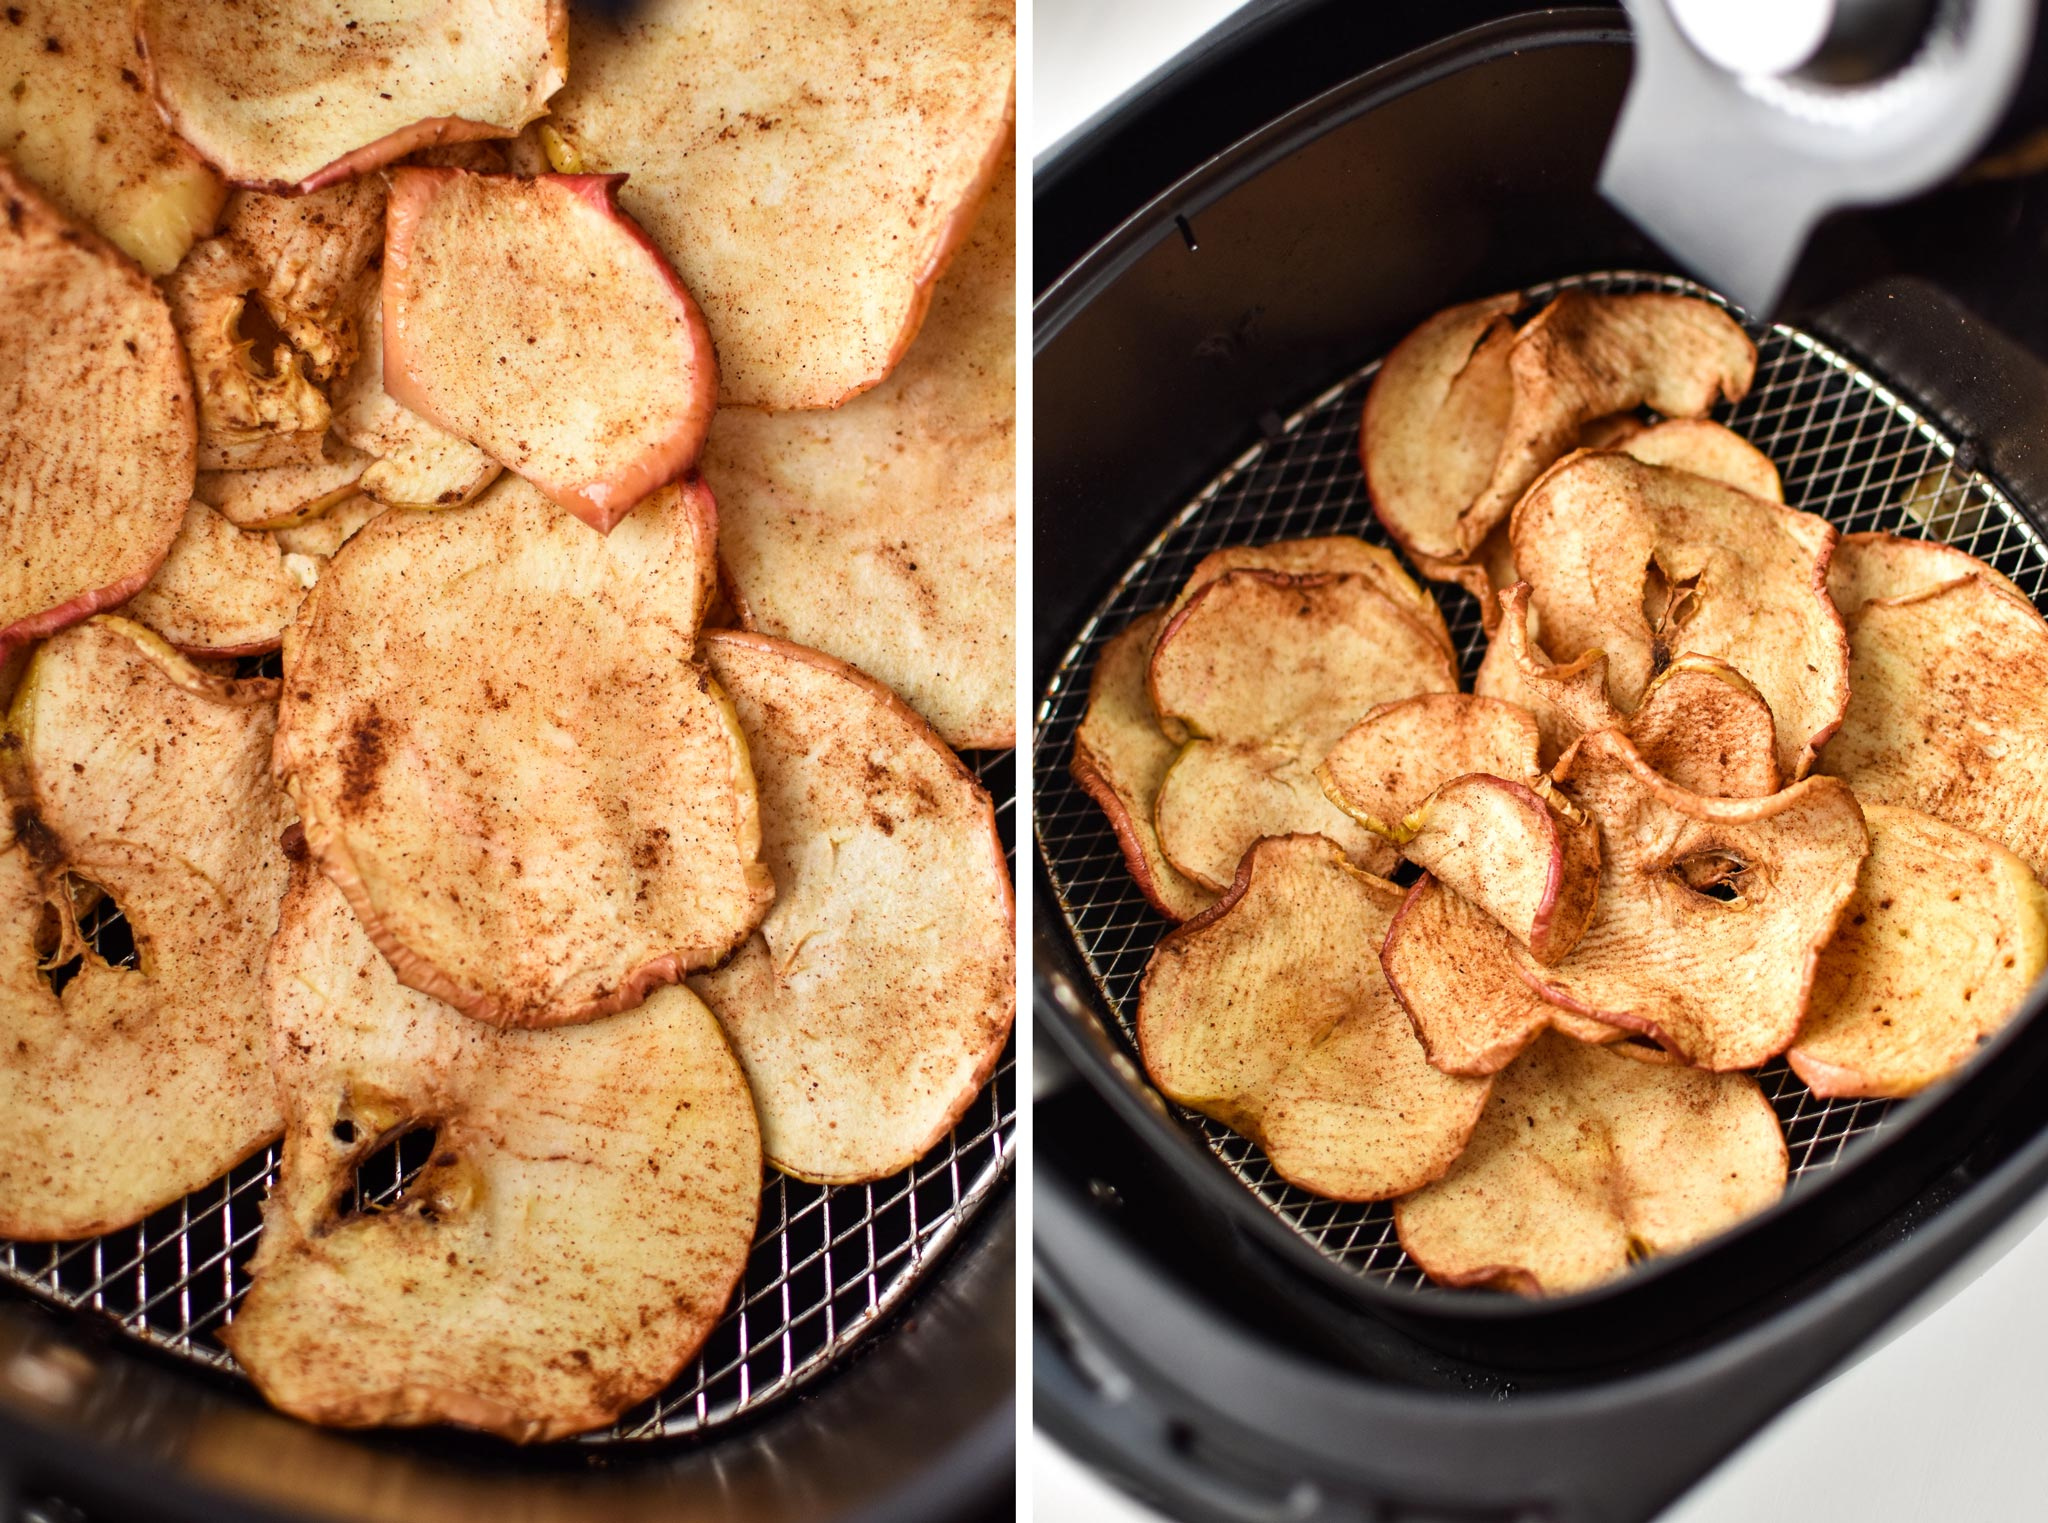 Left: Apple chips after 10 minutes in the air fryer. Right: Apple chips after 22 minutes in the air fryer